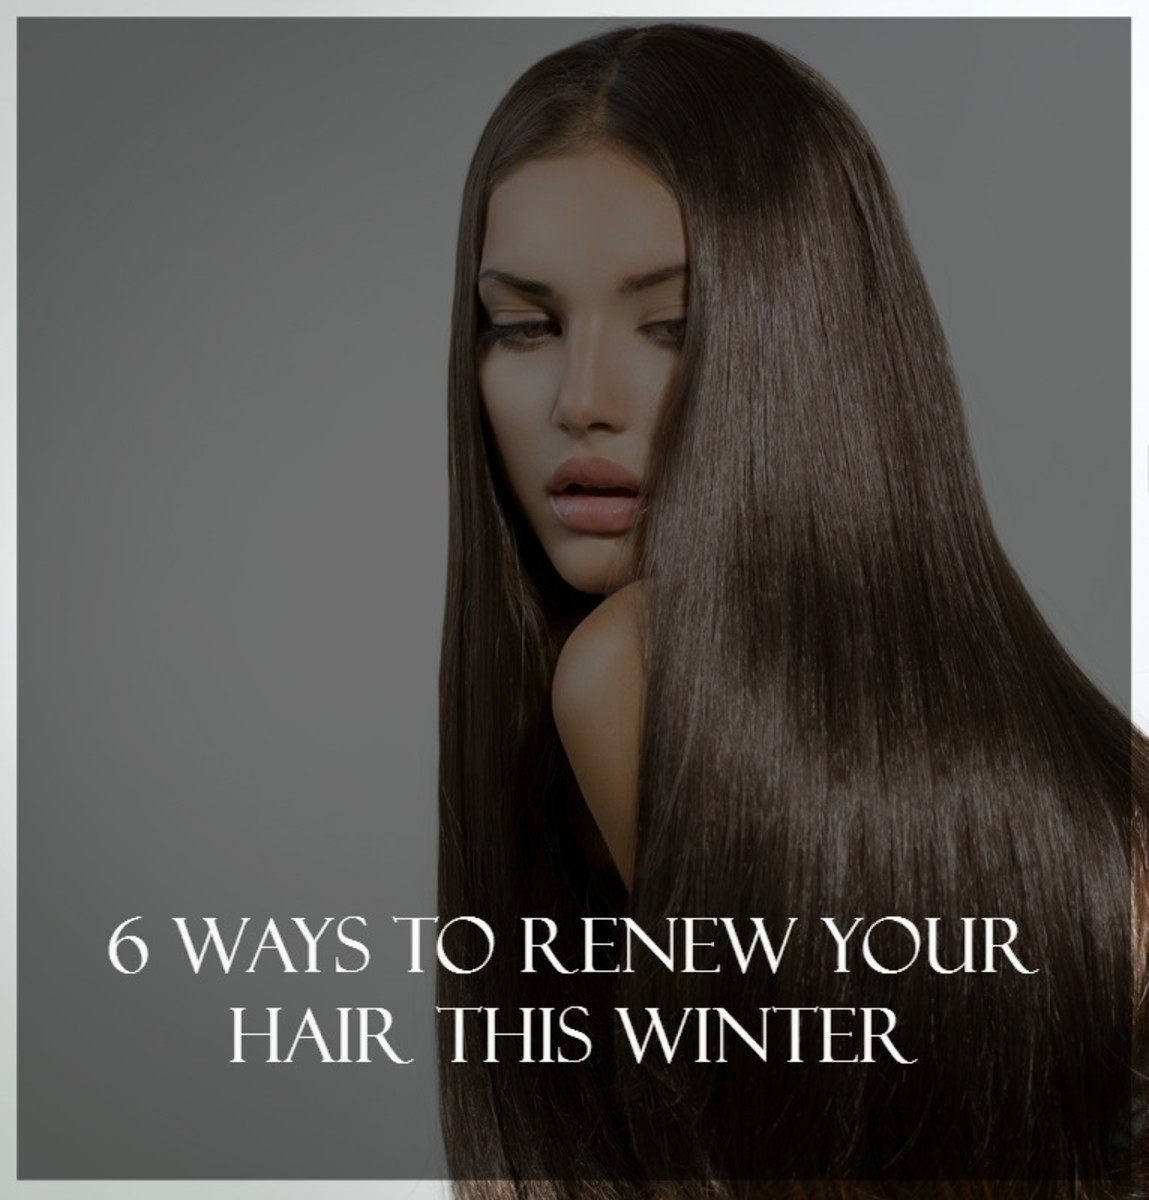 6-ways-to-renew-hair-this-winter